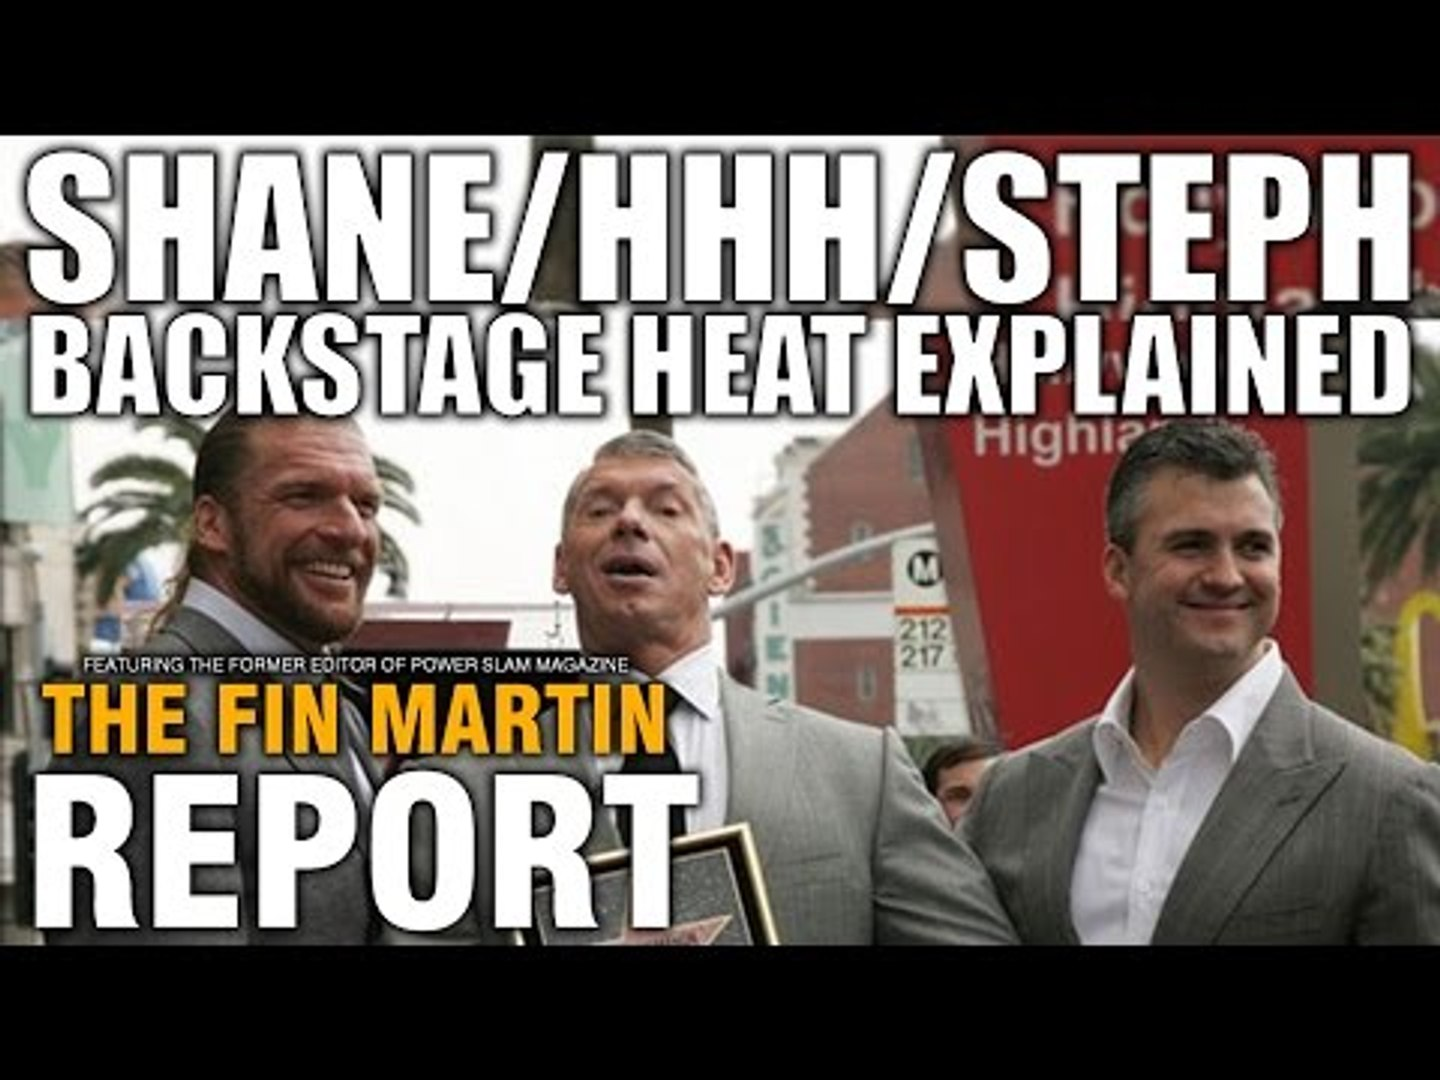 Shane/HHH/Steph McMahon Backstage Heat Explained! Ryback Walks Out WWE!   The Fin Martin Report #8